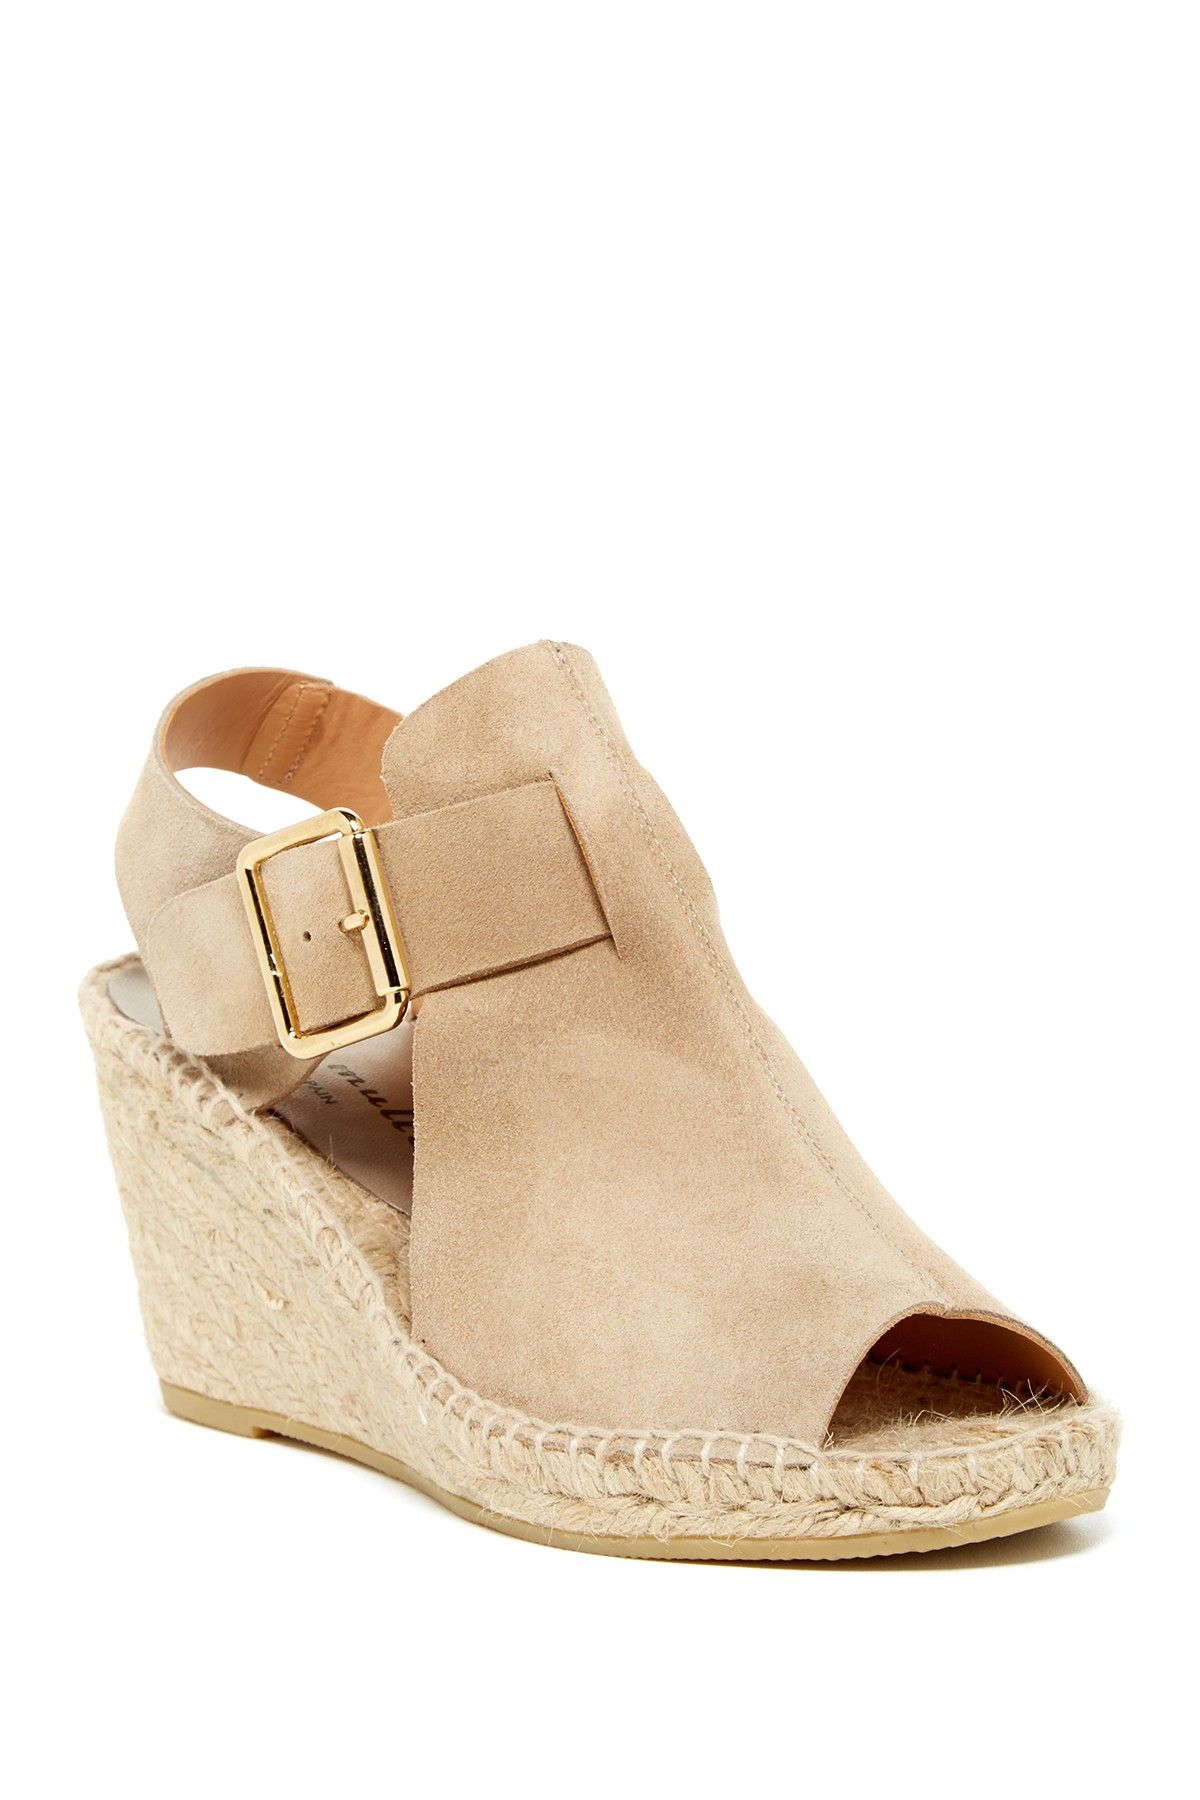 53c7583054a These Dawn Suede Woven Wedge by Bettye Muller are at the top of my list!! I  would like them in the cognac color.